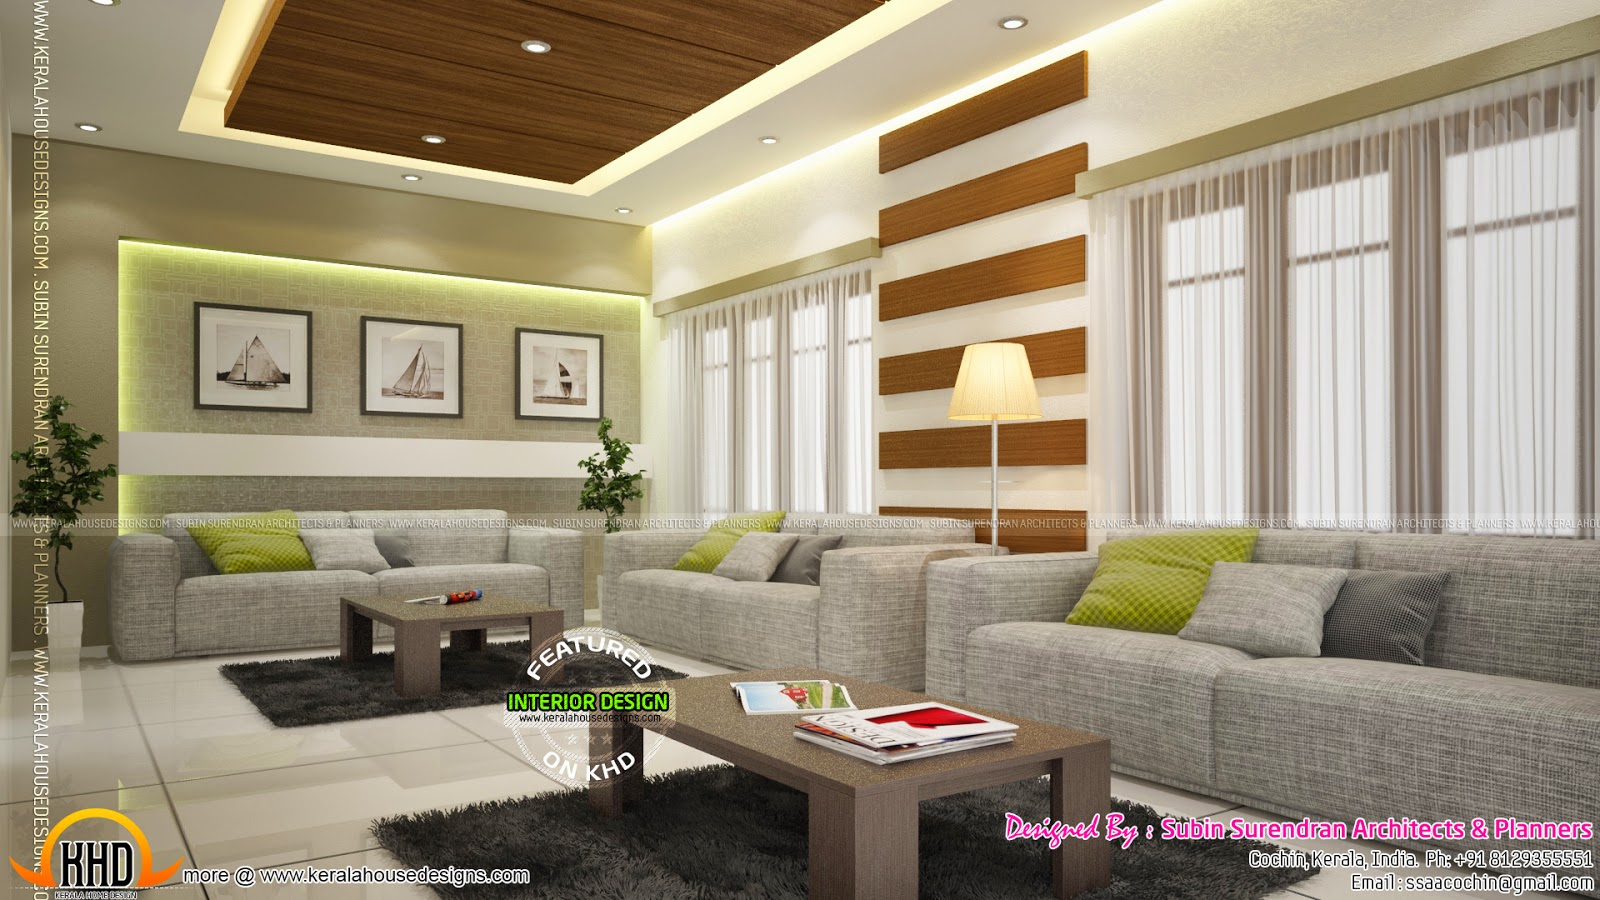 Beautiful home interior designs kerala home design and for Home design ideas